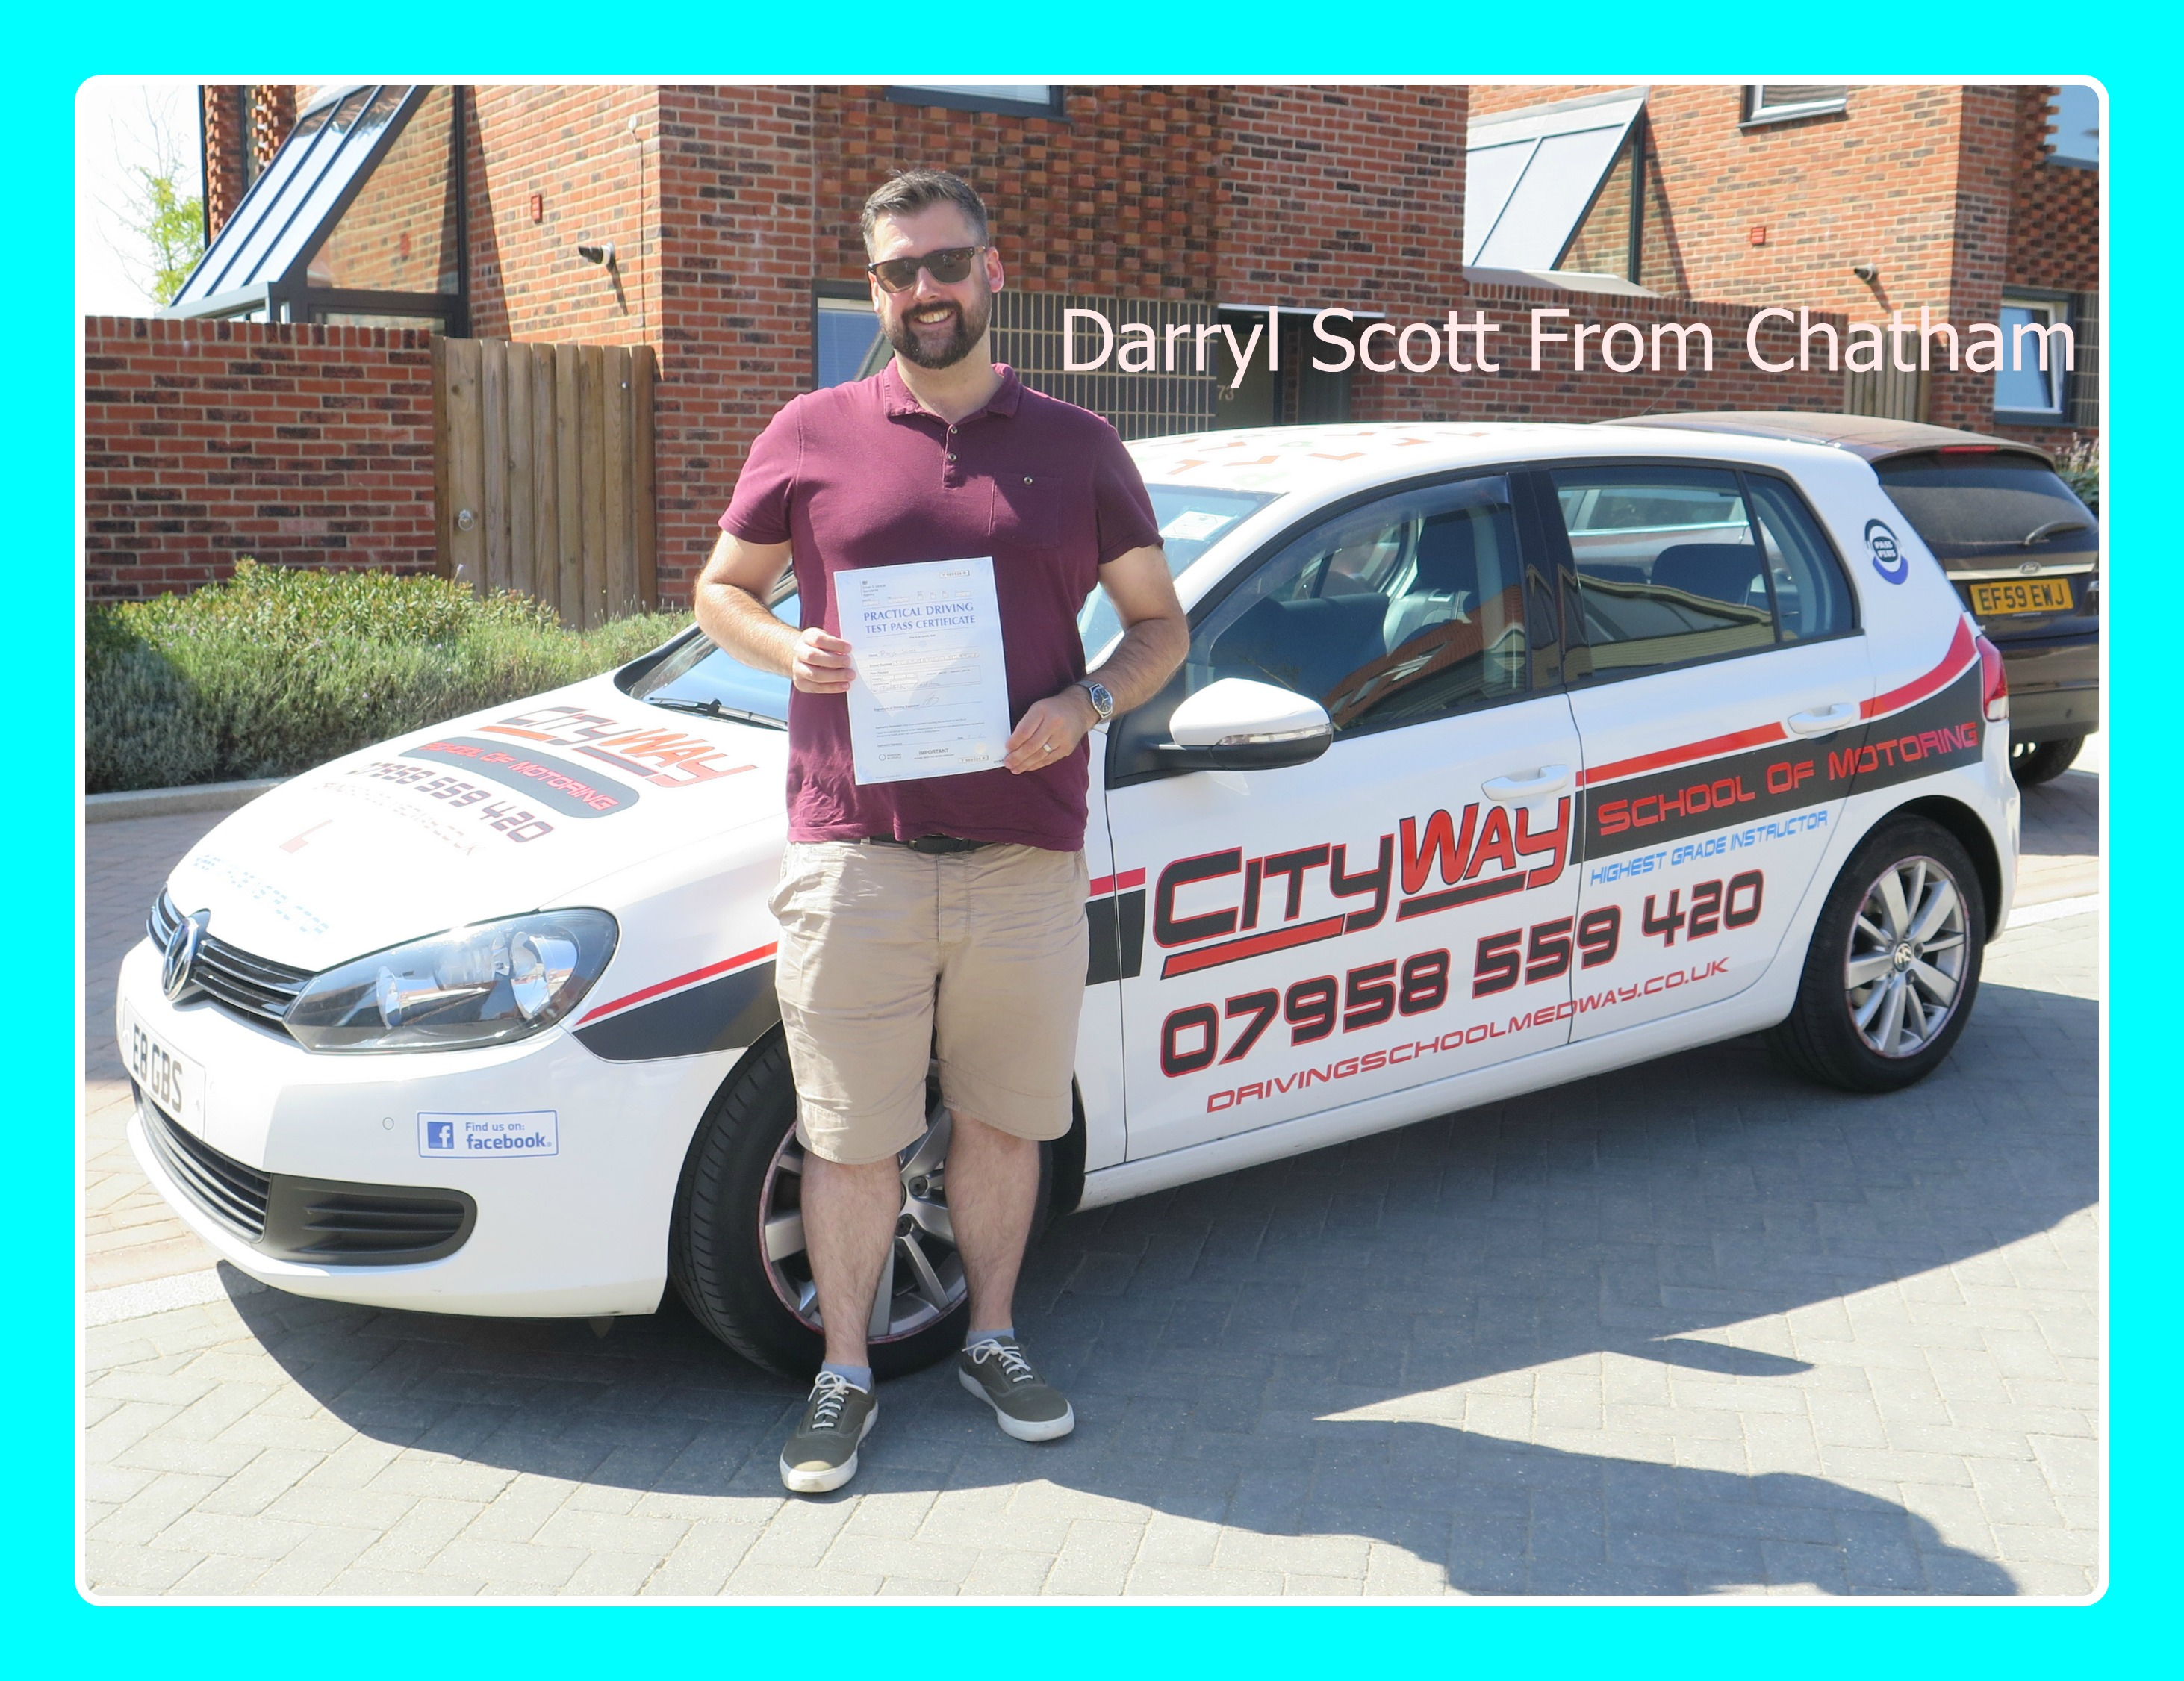 driving lessons chatham darryl scott